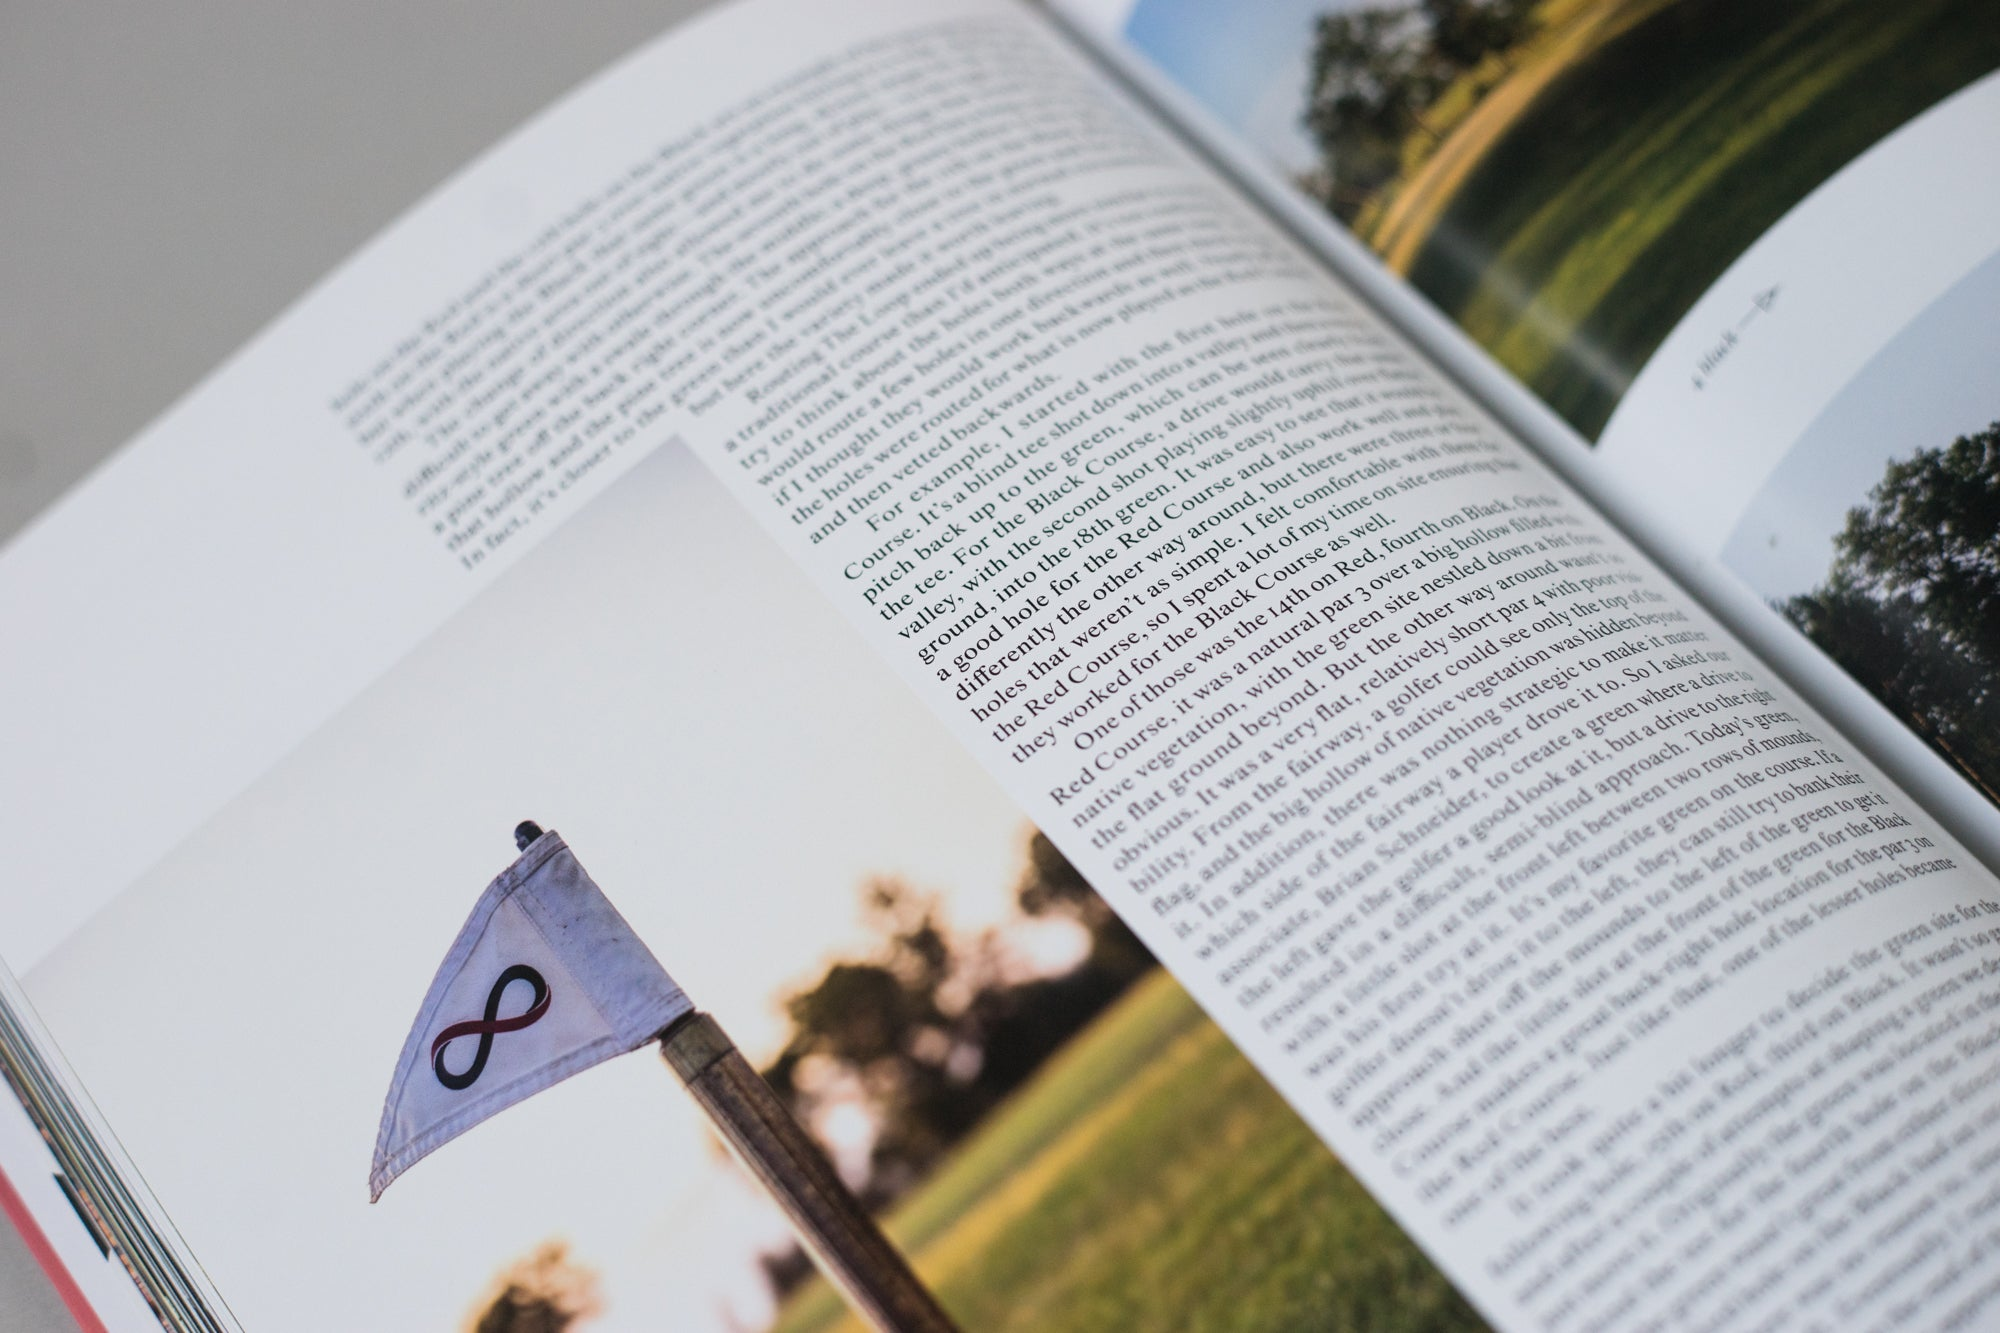 Article spread from The Golfer's Journal Issue 6